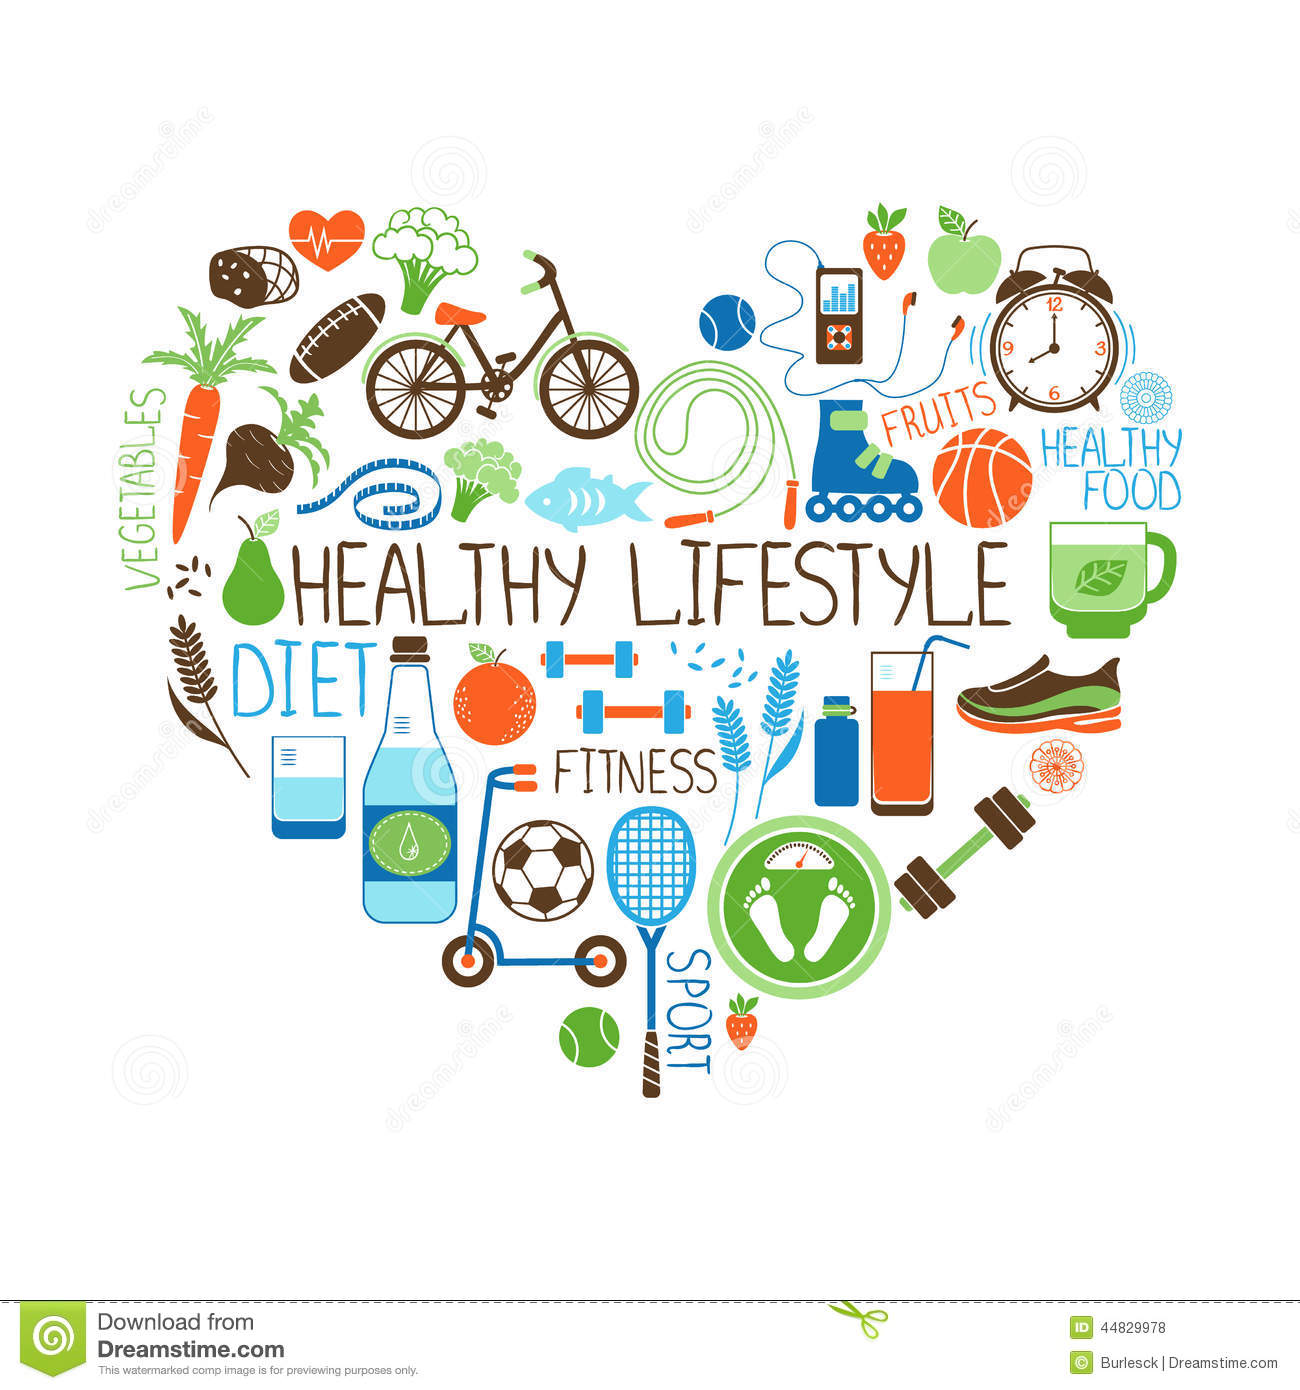 healthy-lifestyle-diet-fitness-heart-sig